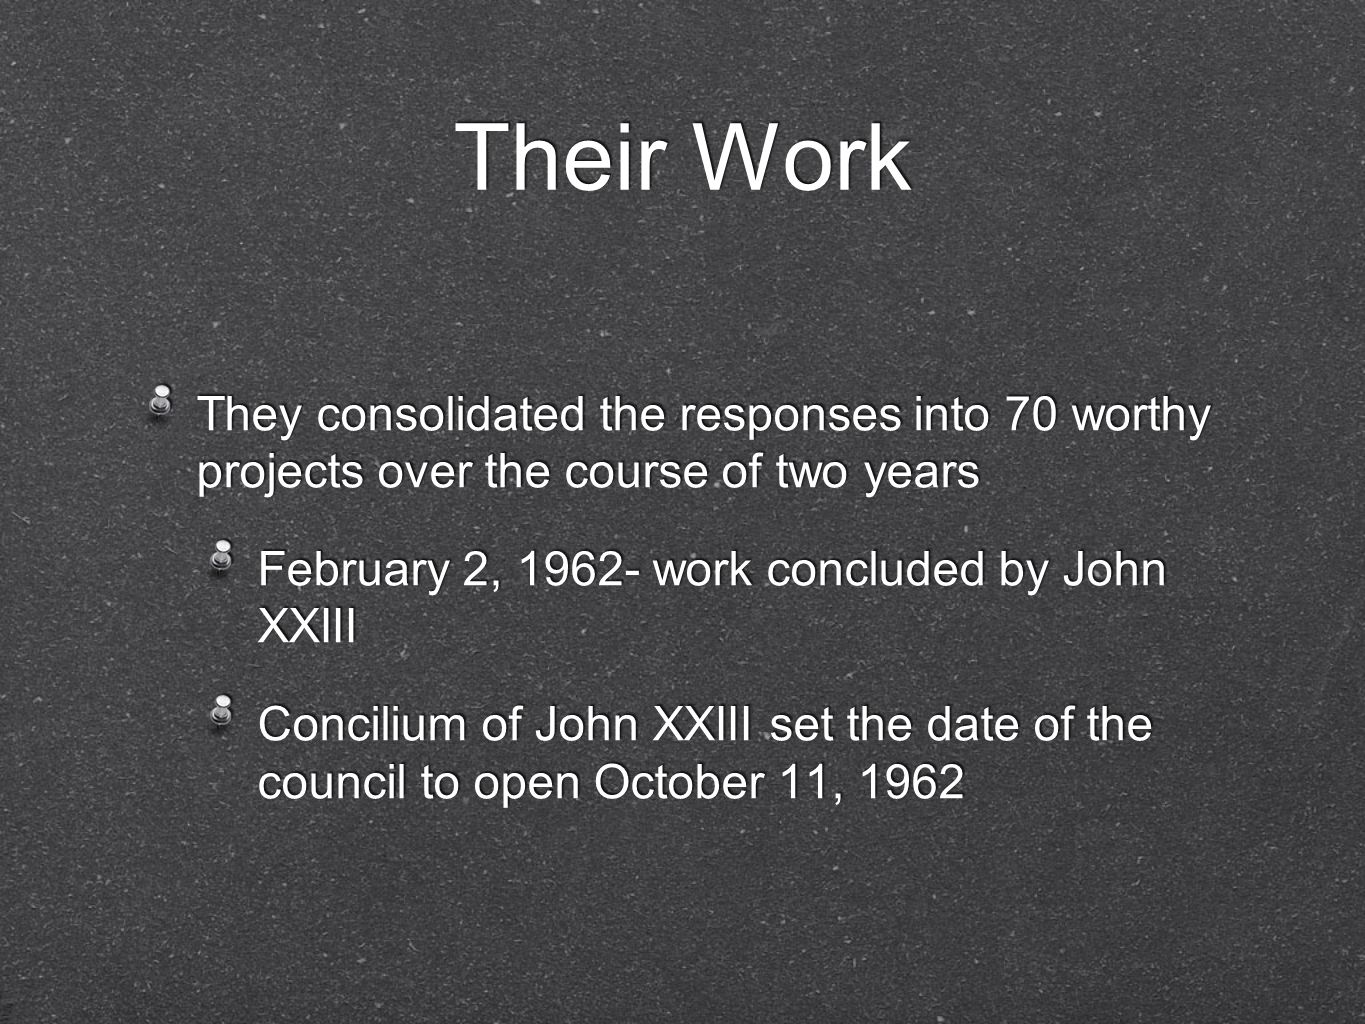 Their Work They consolidated the responses into 70 worthy projects over the course of two years. February 2, 1962- work concluded by John XXIII.